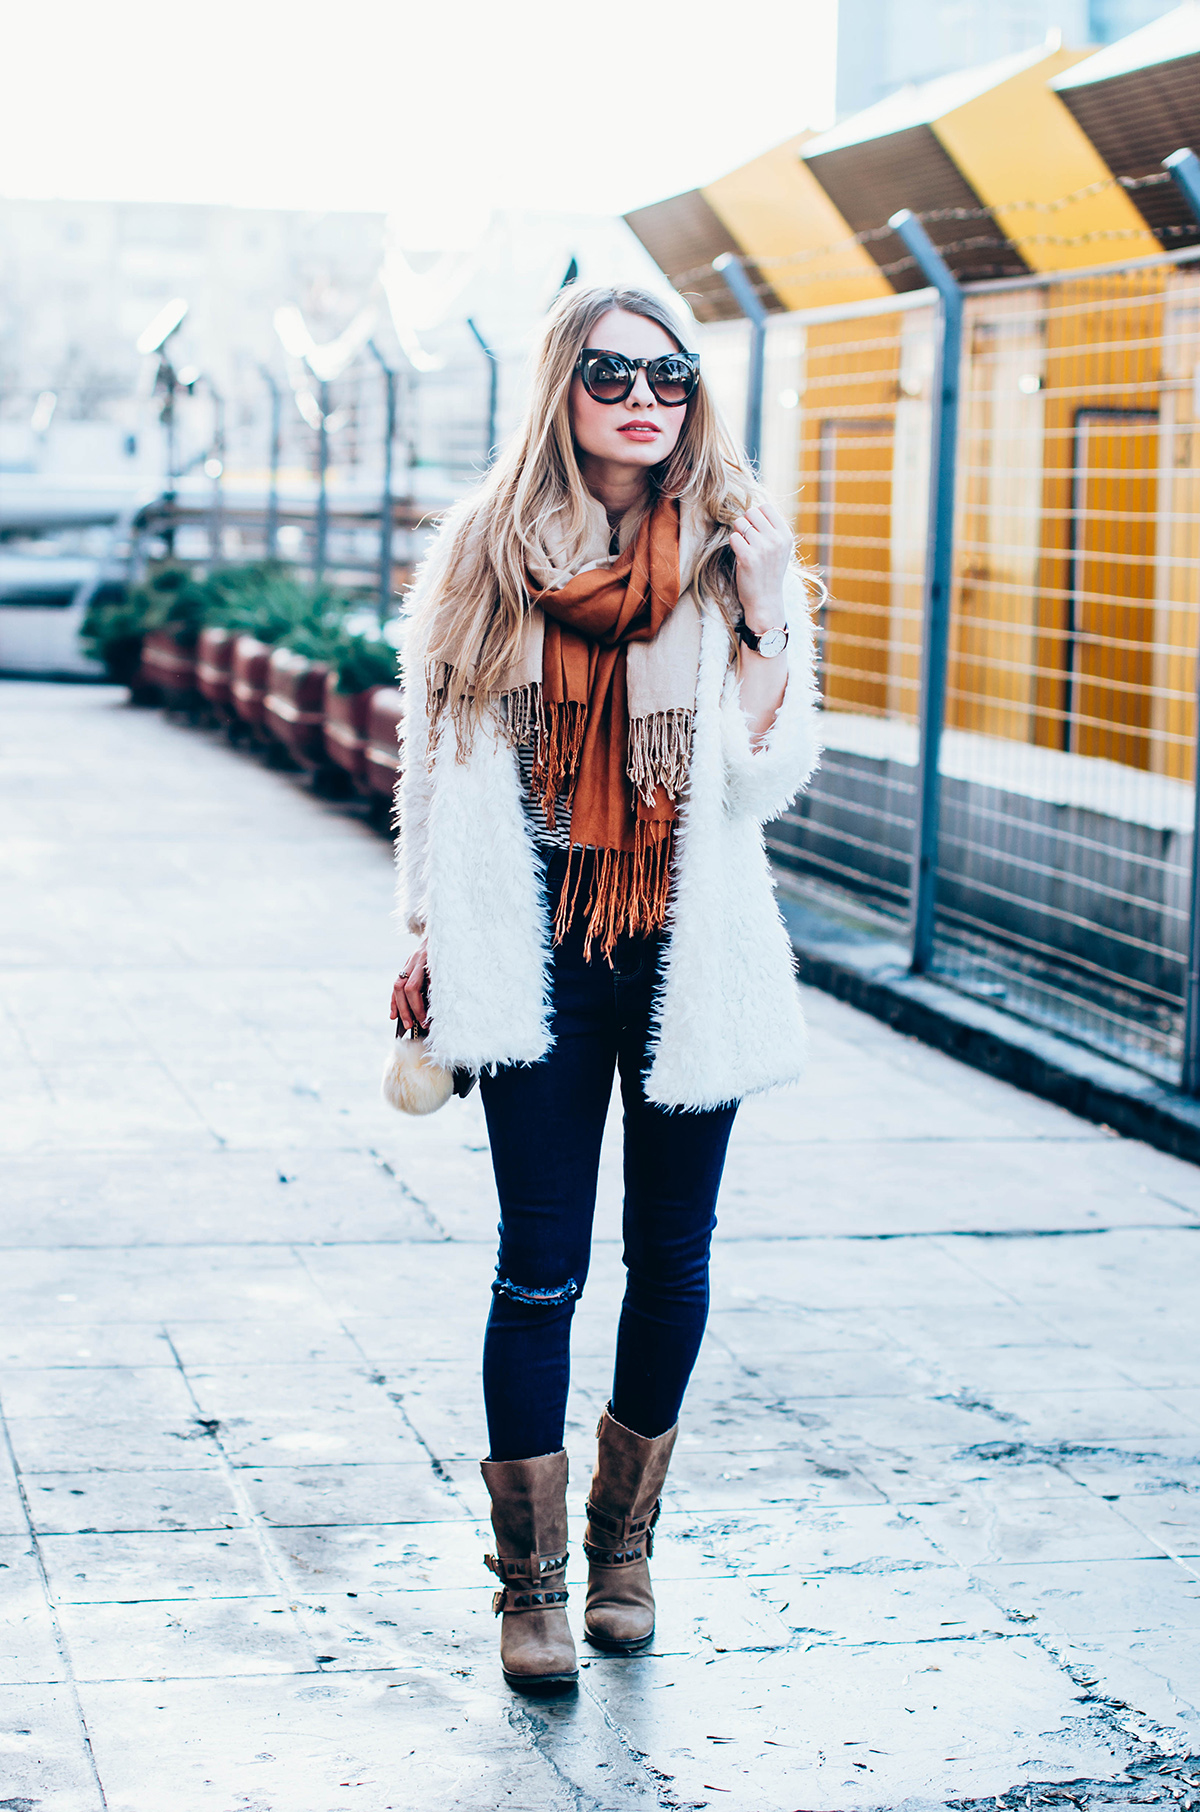 white-fluffy-cardgan-ripped-skinny-jeans-suede-boots-camel-scarf-fluffy-keyrng-cat-eye-sunglasses (2)